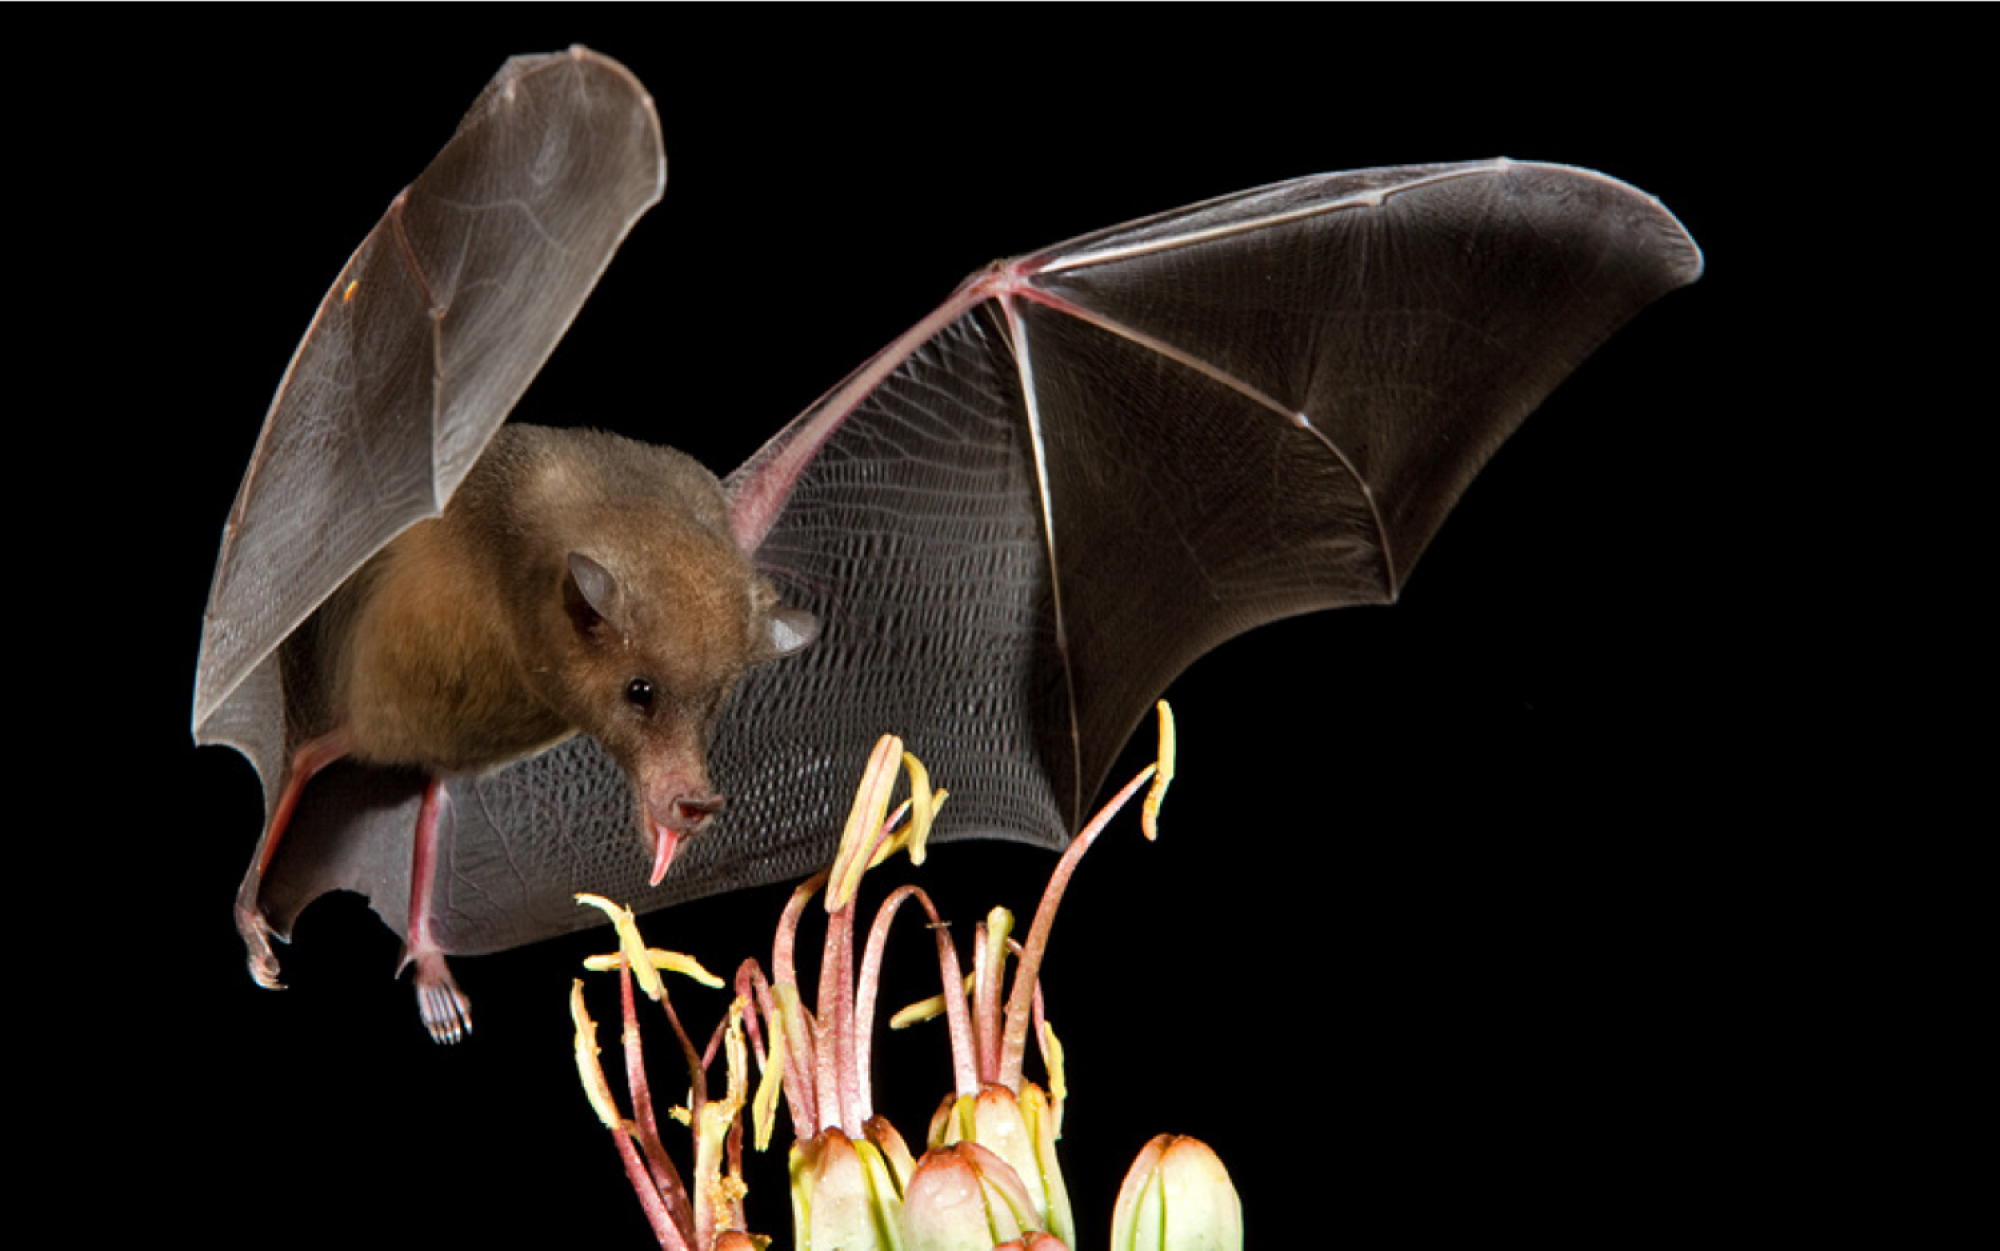 Many species of bats, such as this lesser long-nosed bat, pollinate plants, another example of important ecosystem services provided by these nocturnal mammals.